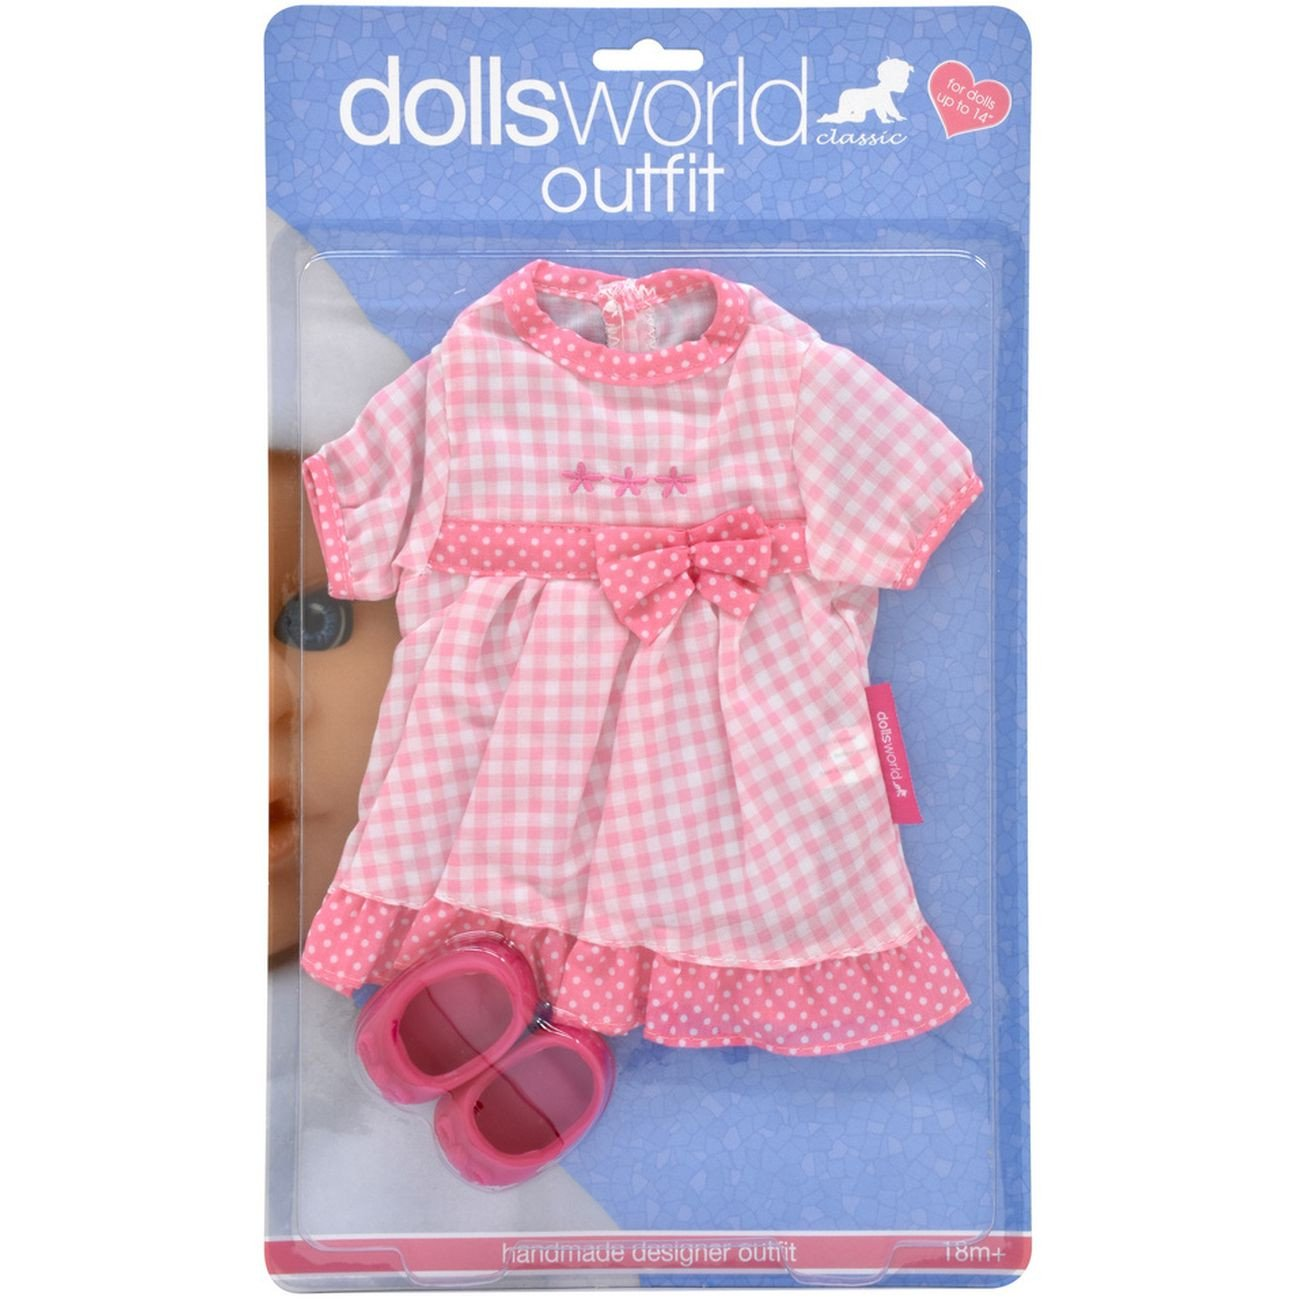 DOLLSWORLD BOUTIQUE OUTFIT & SHOES